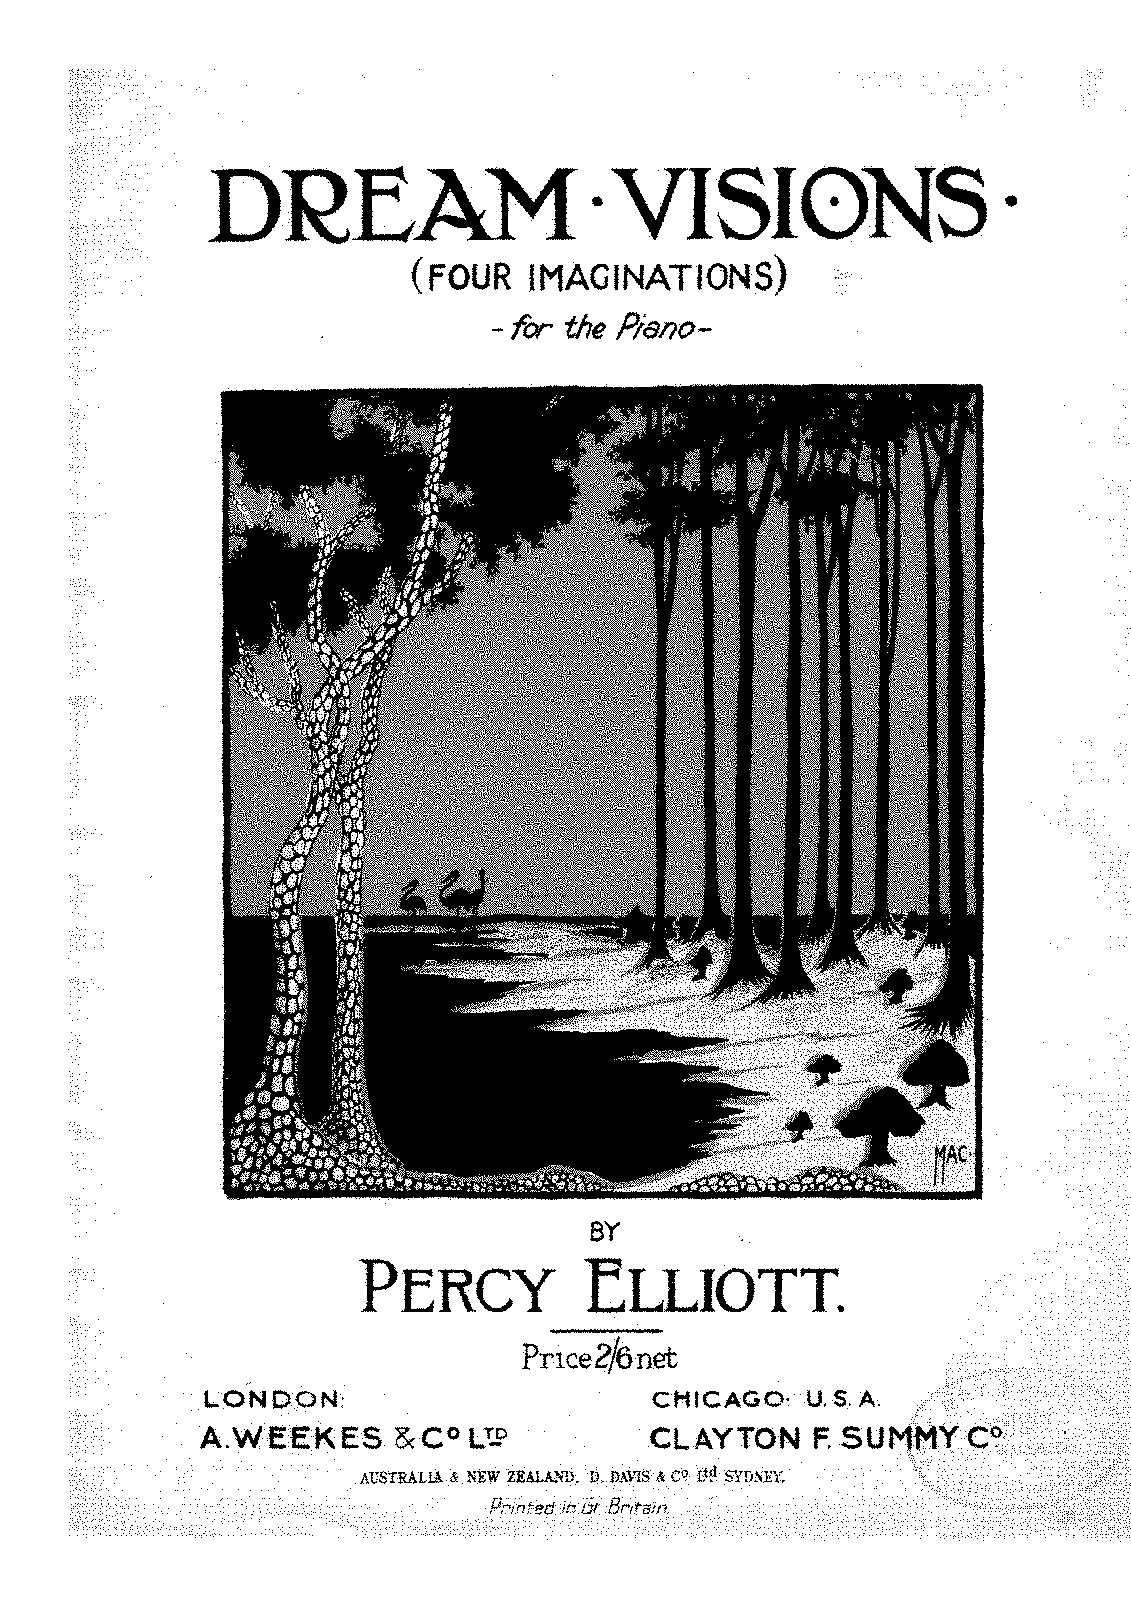 PMLP484905-Dream Vissions Elliott.pdf